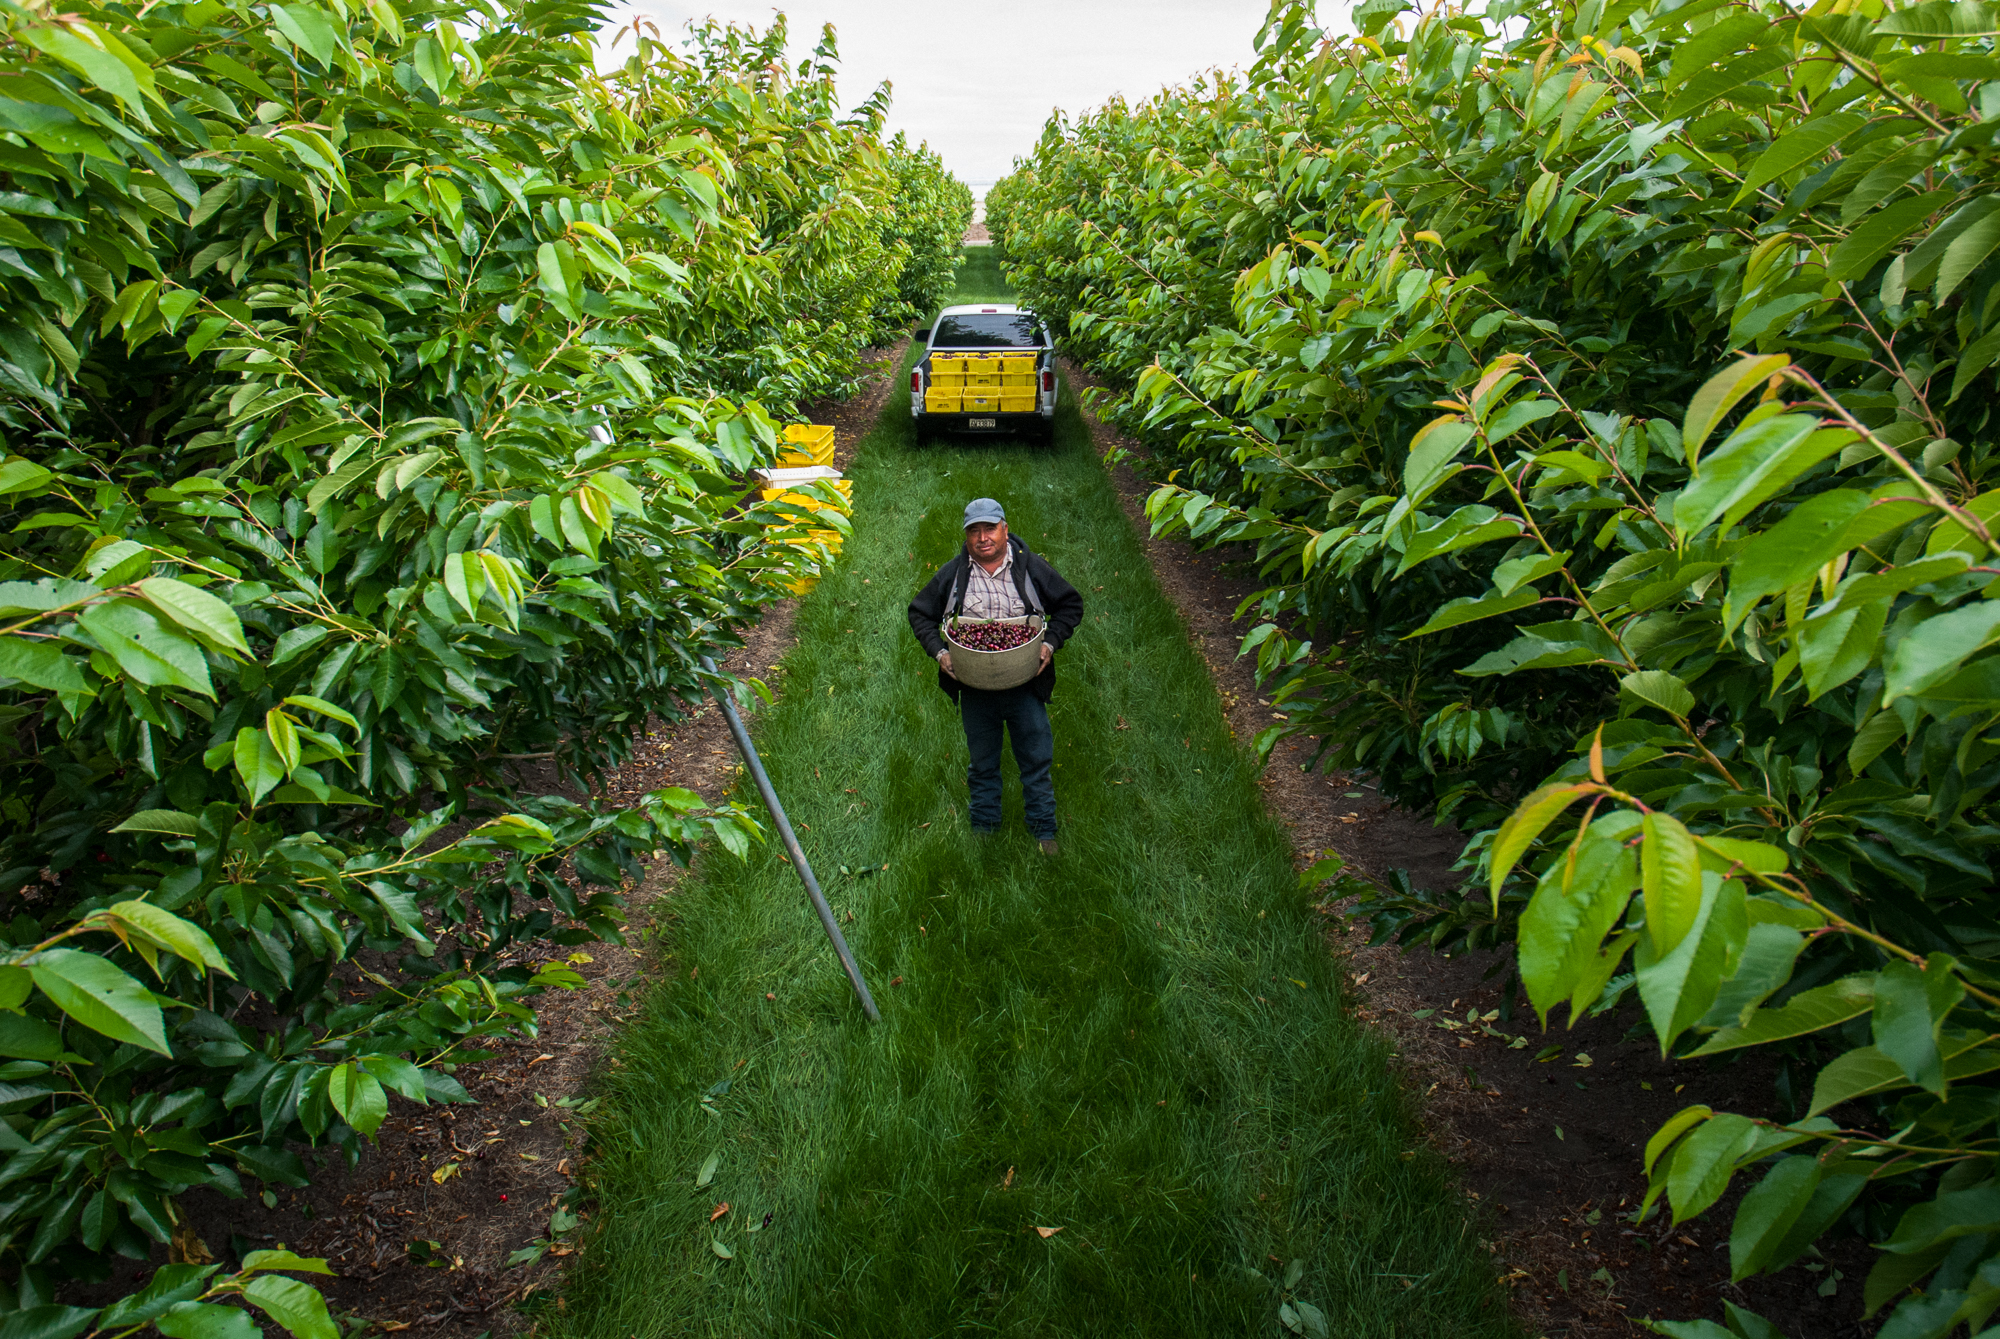 Farm worker, Juan Espinoza, stands amid the rows of healthy cherry trees in Gilroy, Calif.